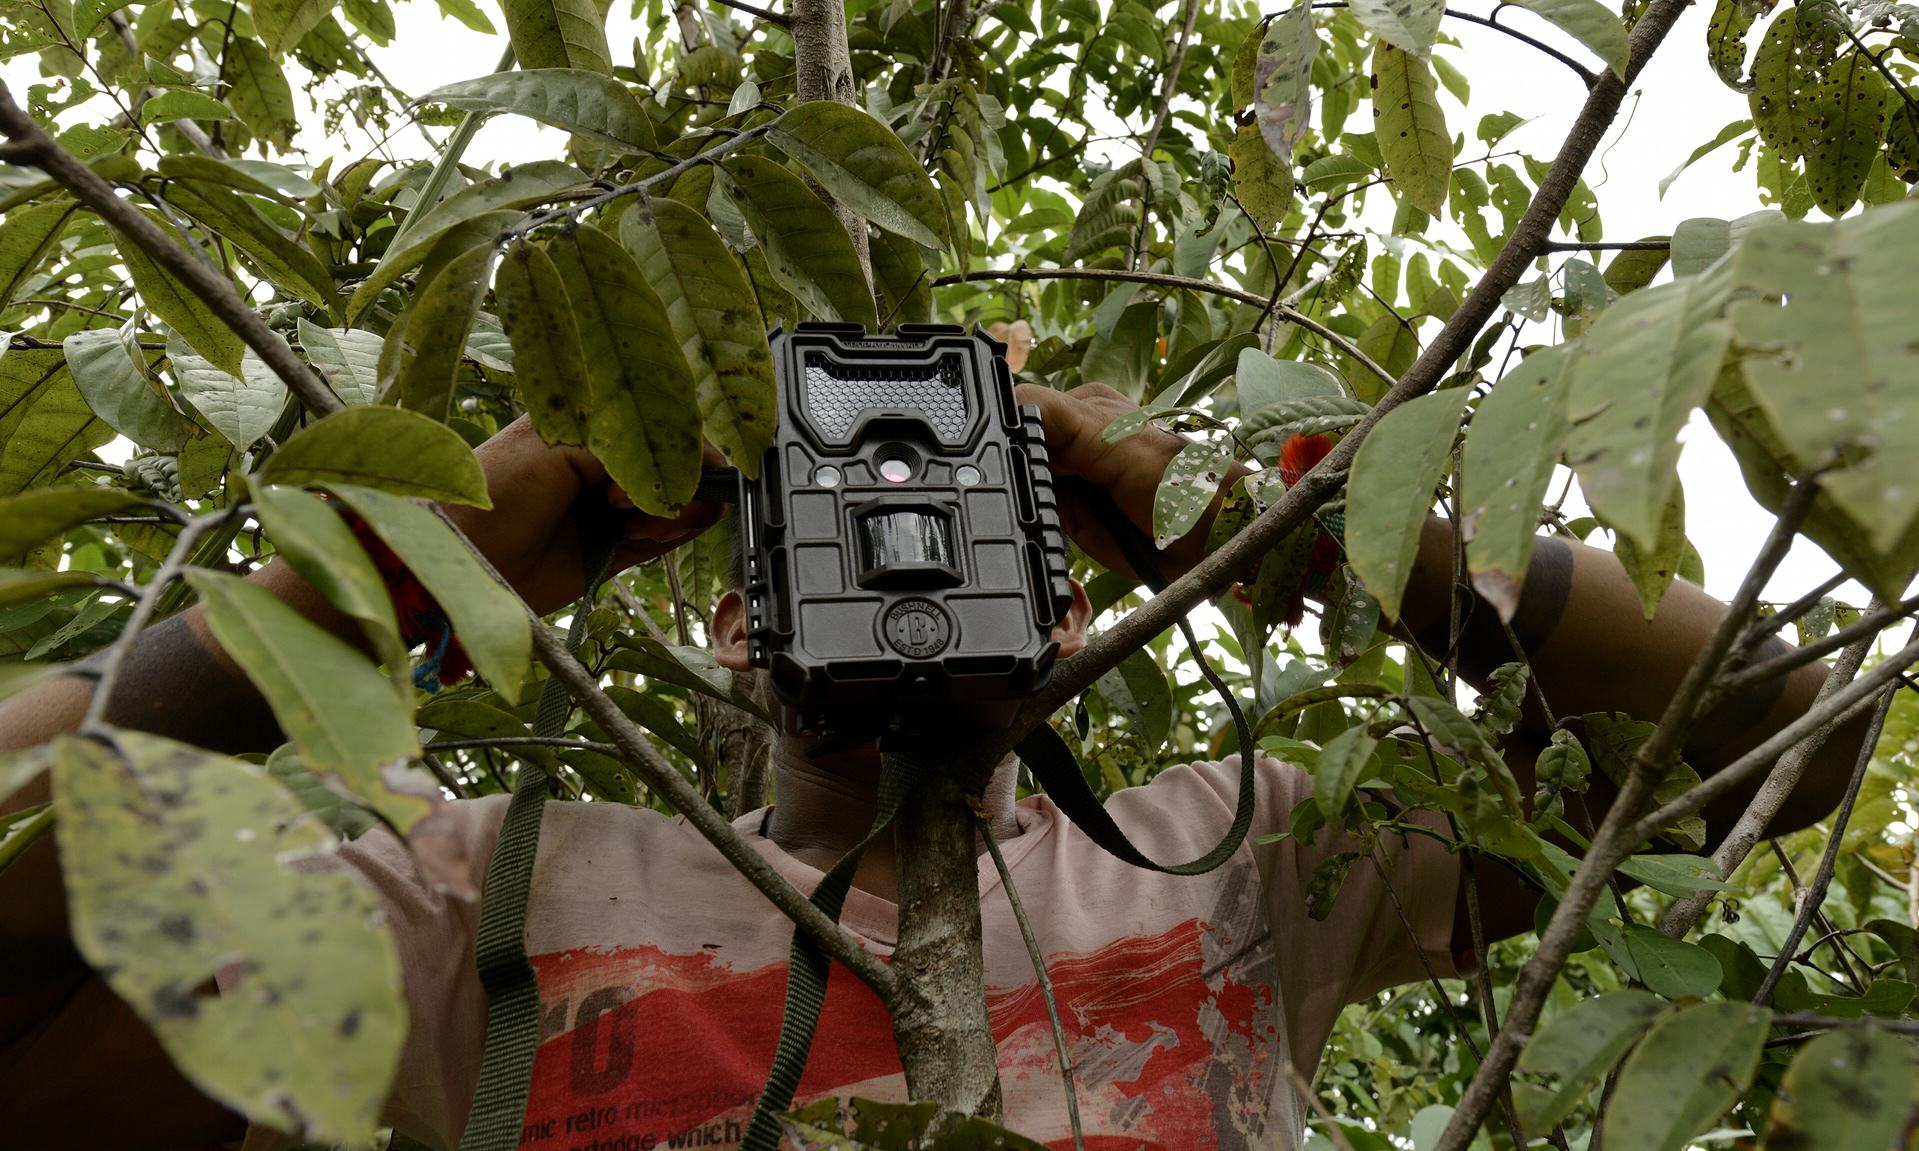 A Ka'apor Indian sets up a trap camera in an area used by illegal loggers. Photograph- Lunae Parracho:Greenpeace